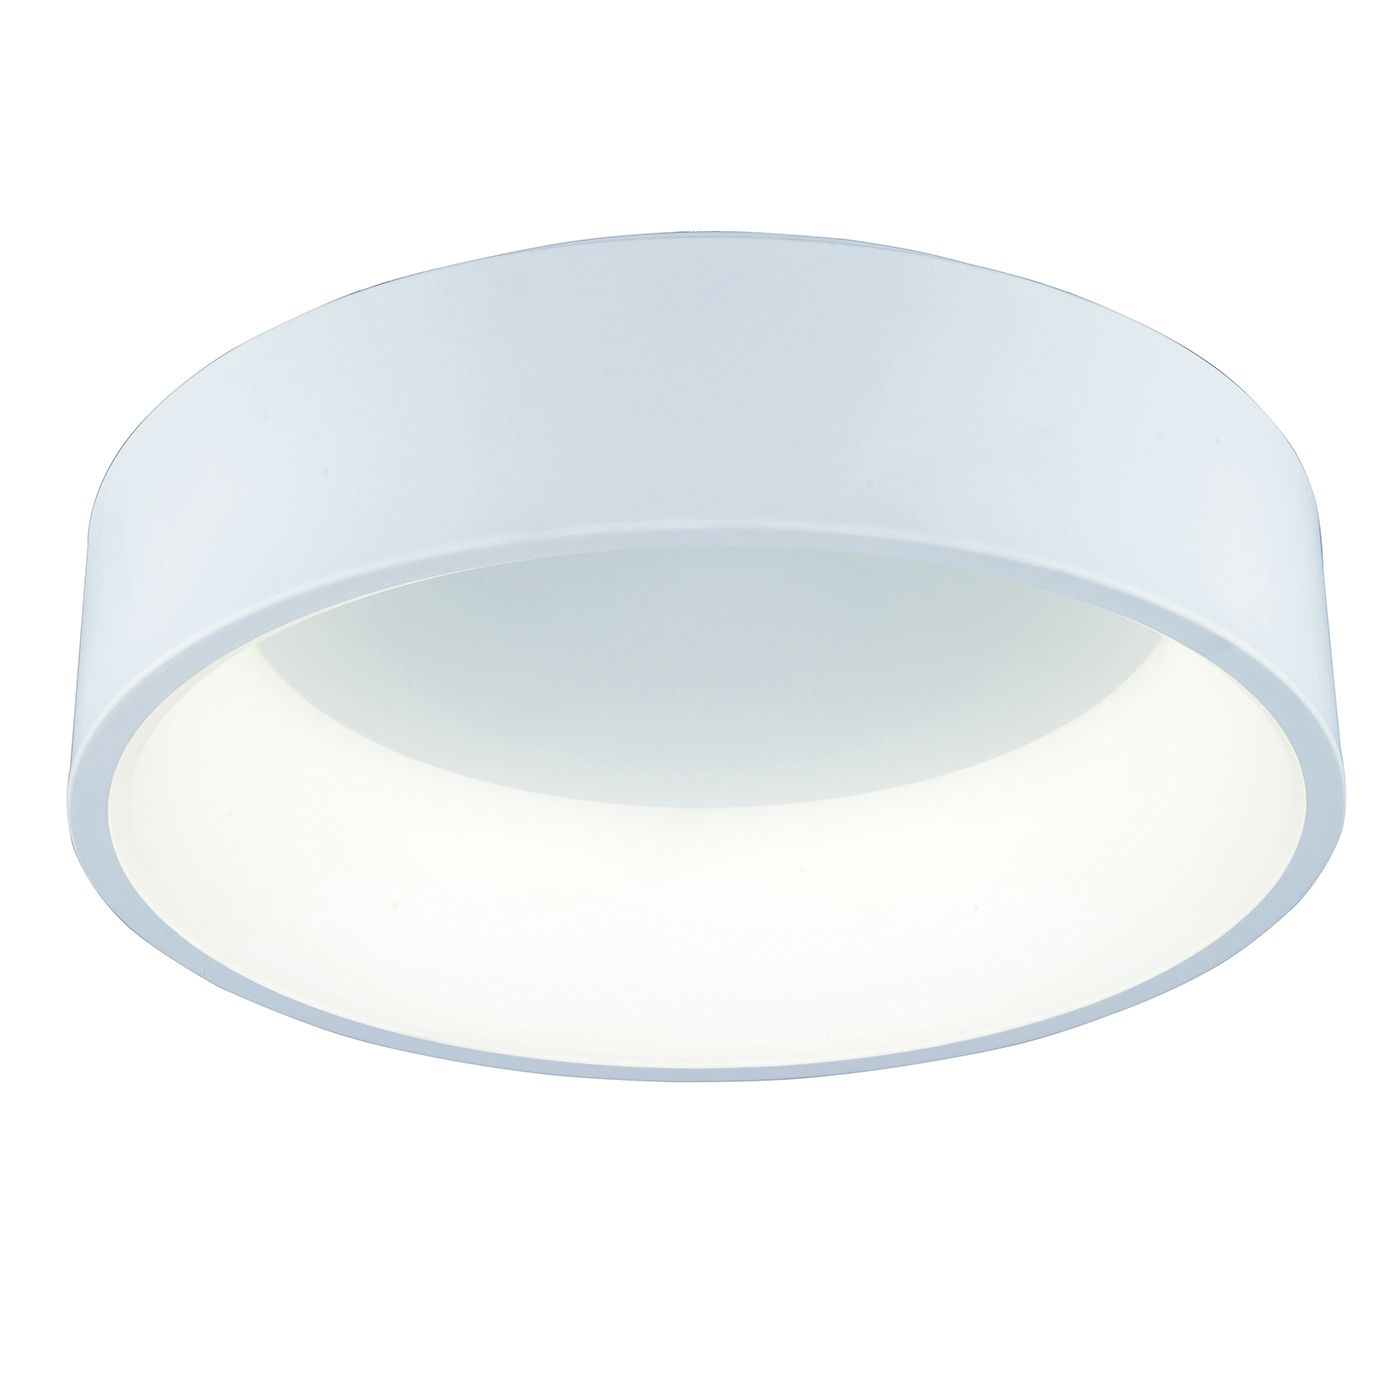 Lampara plafon led potente para techo estilo cl sico hole - Lamparas techo economicas ...